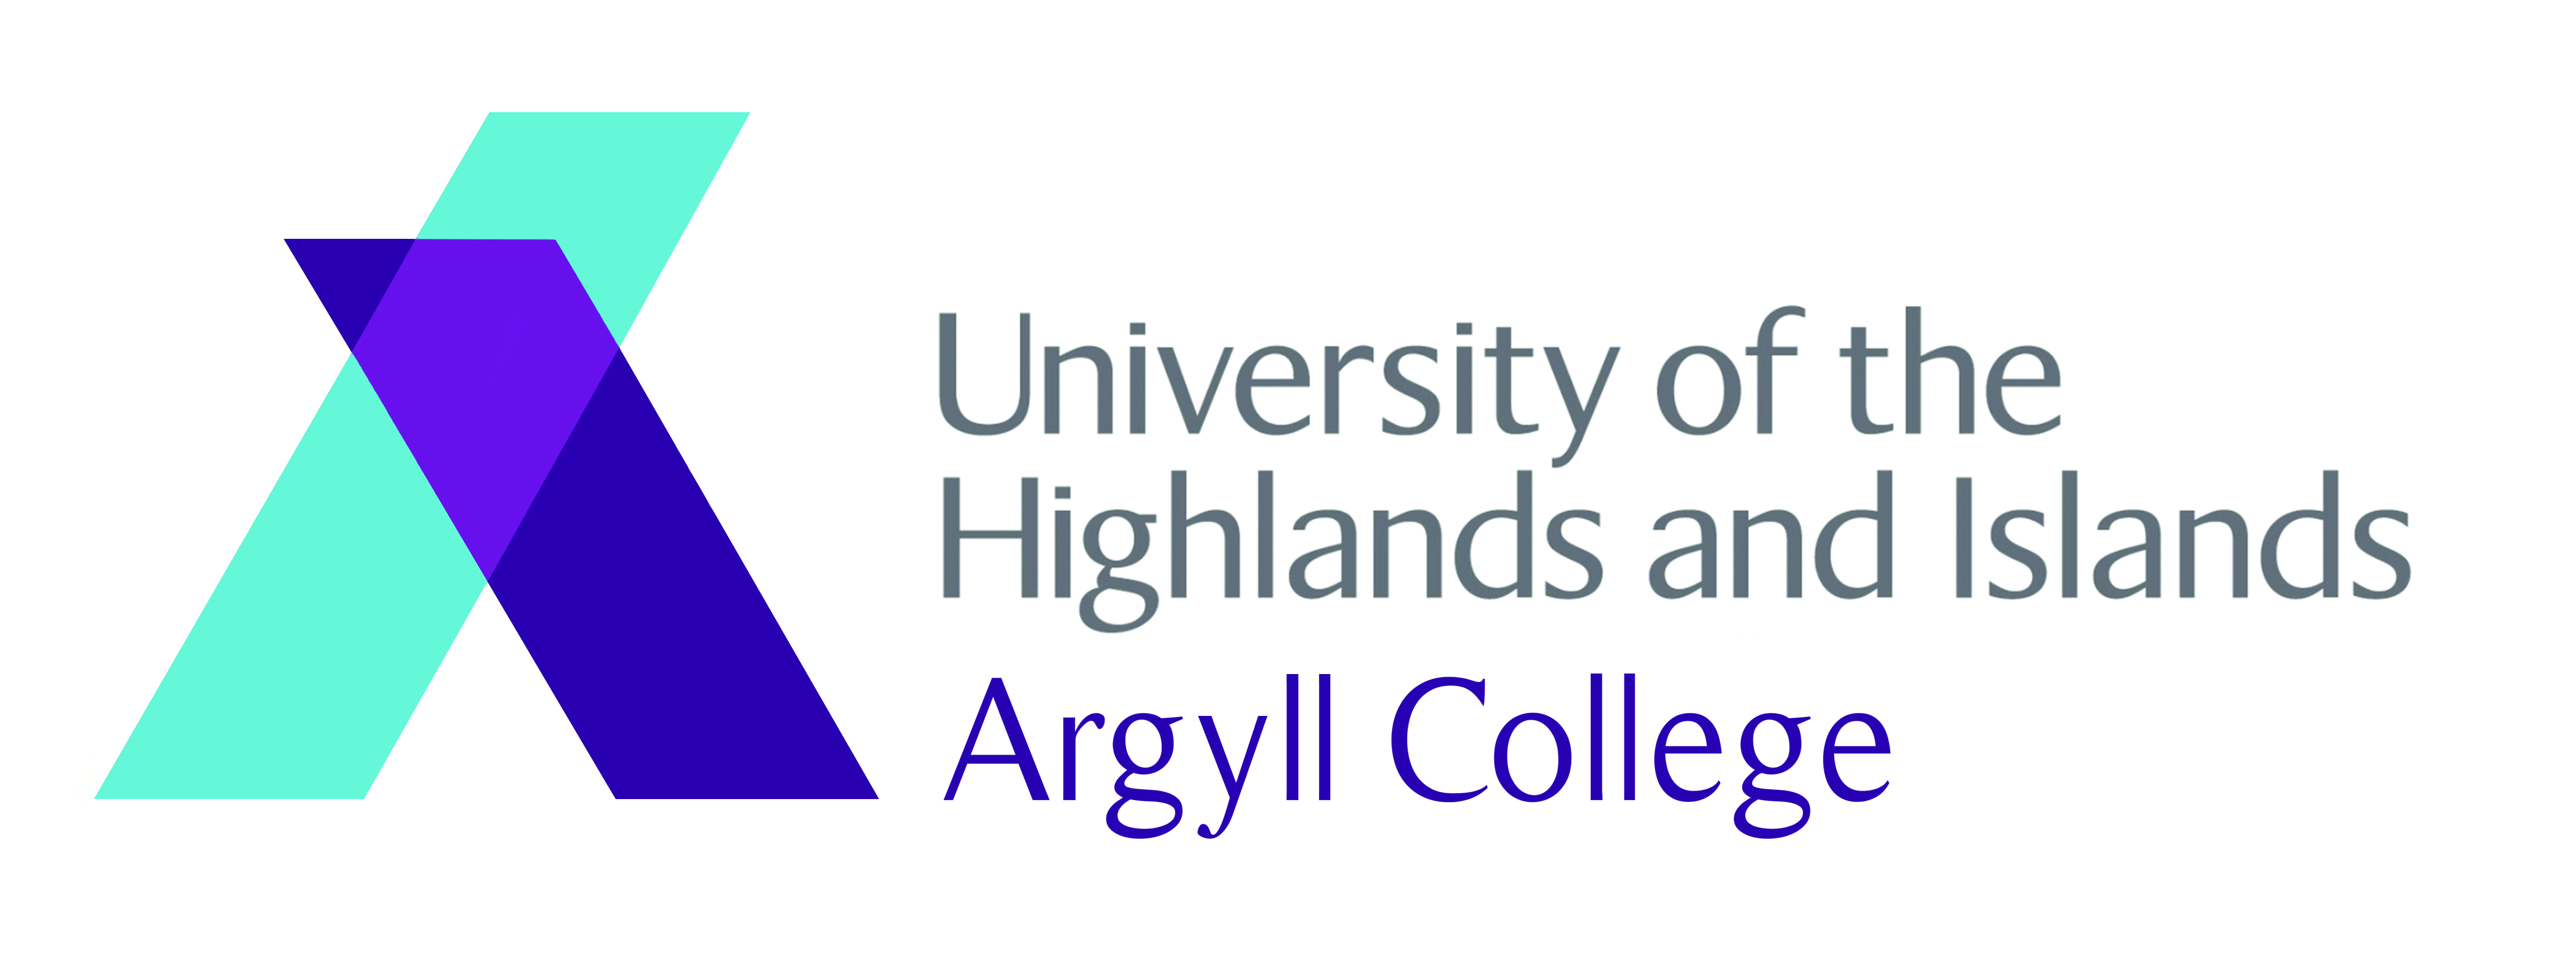 Visit Argyll College website